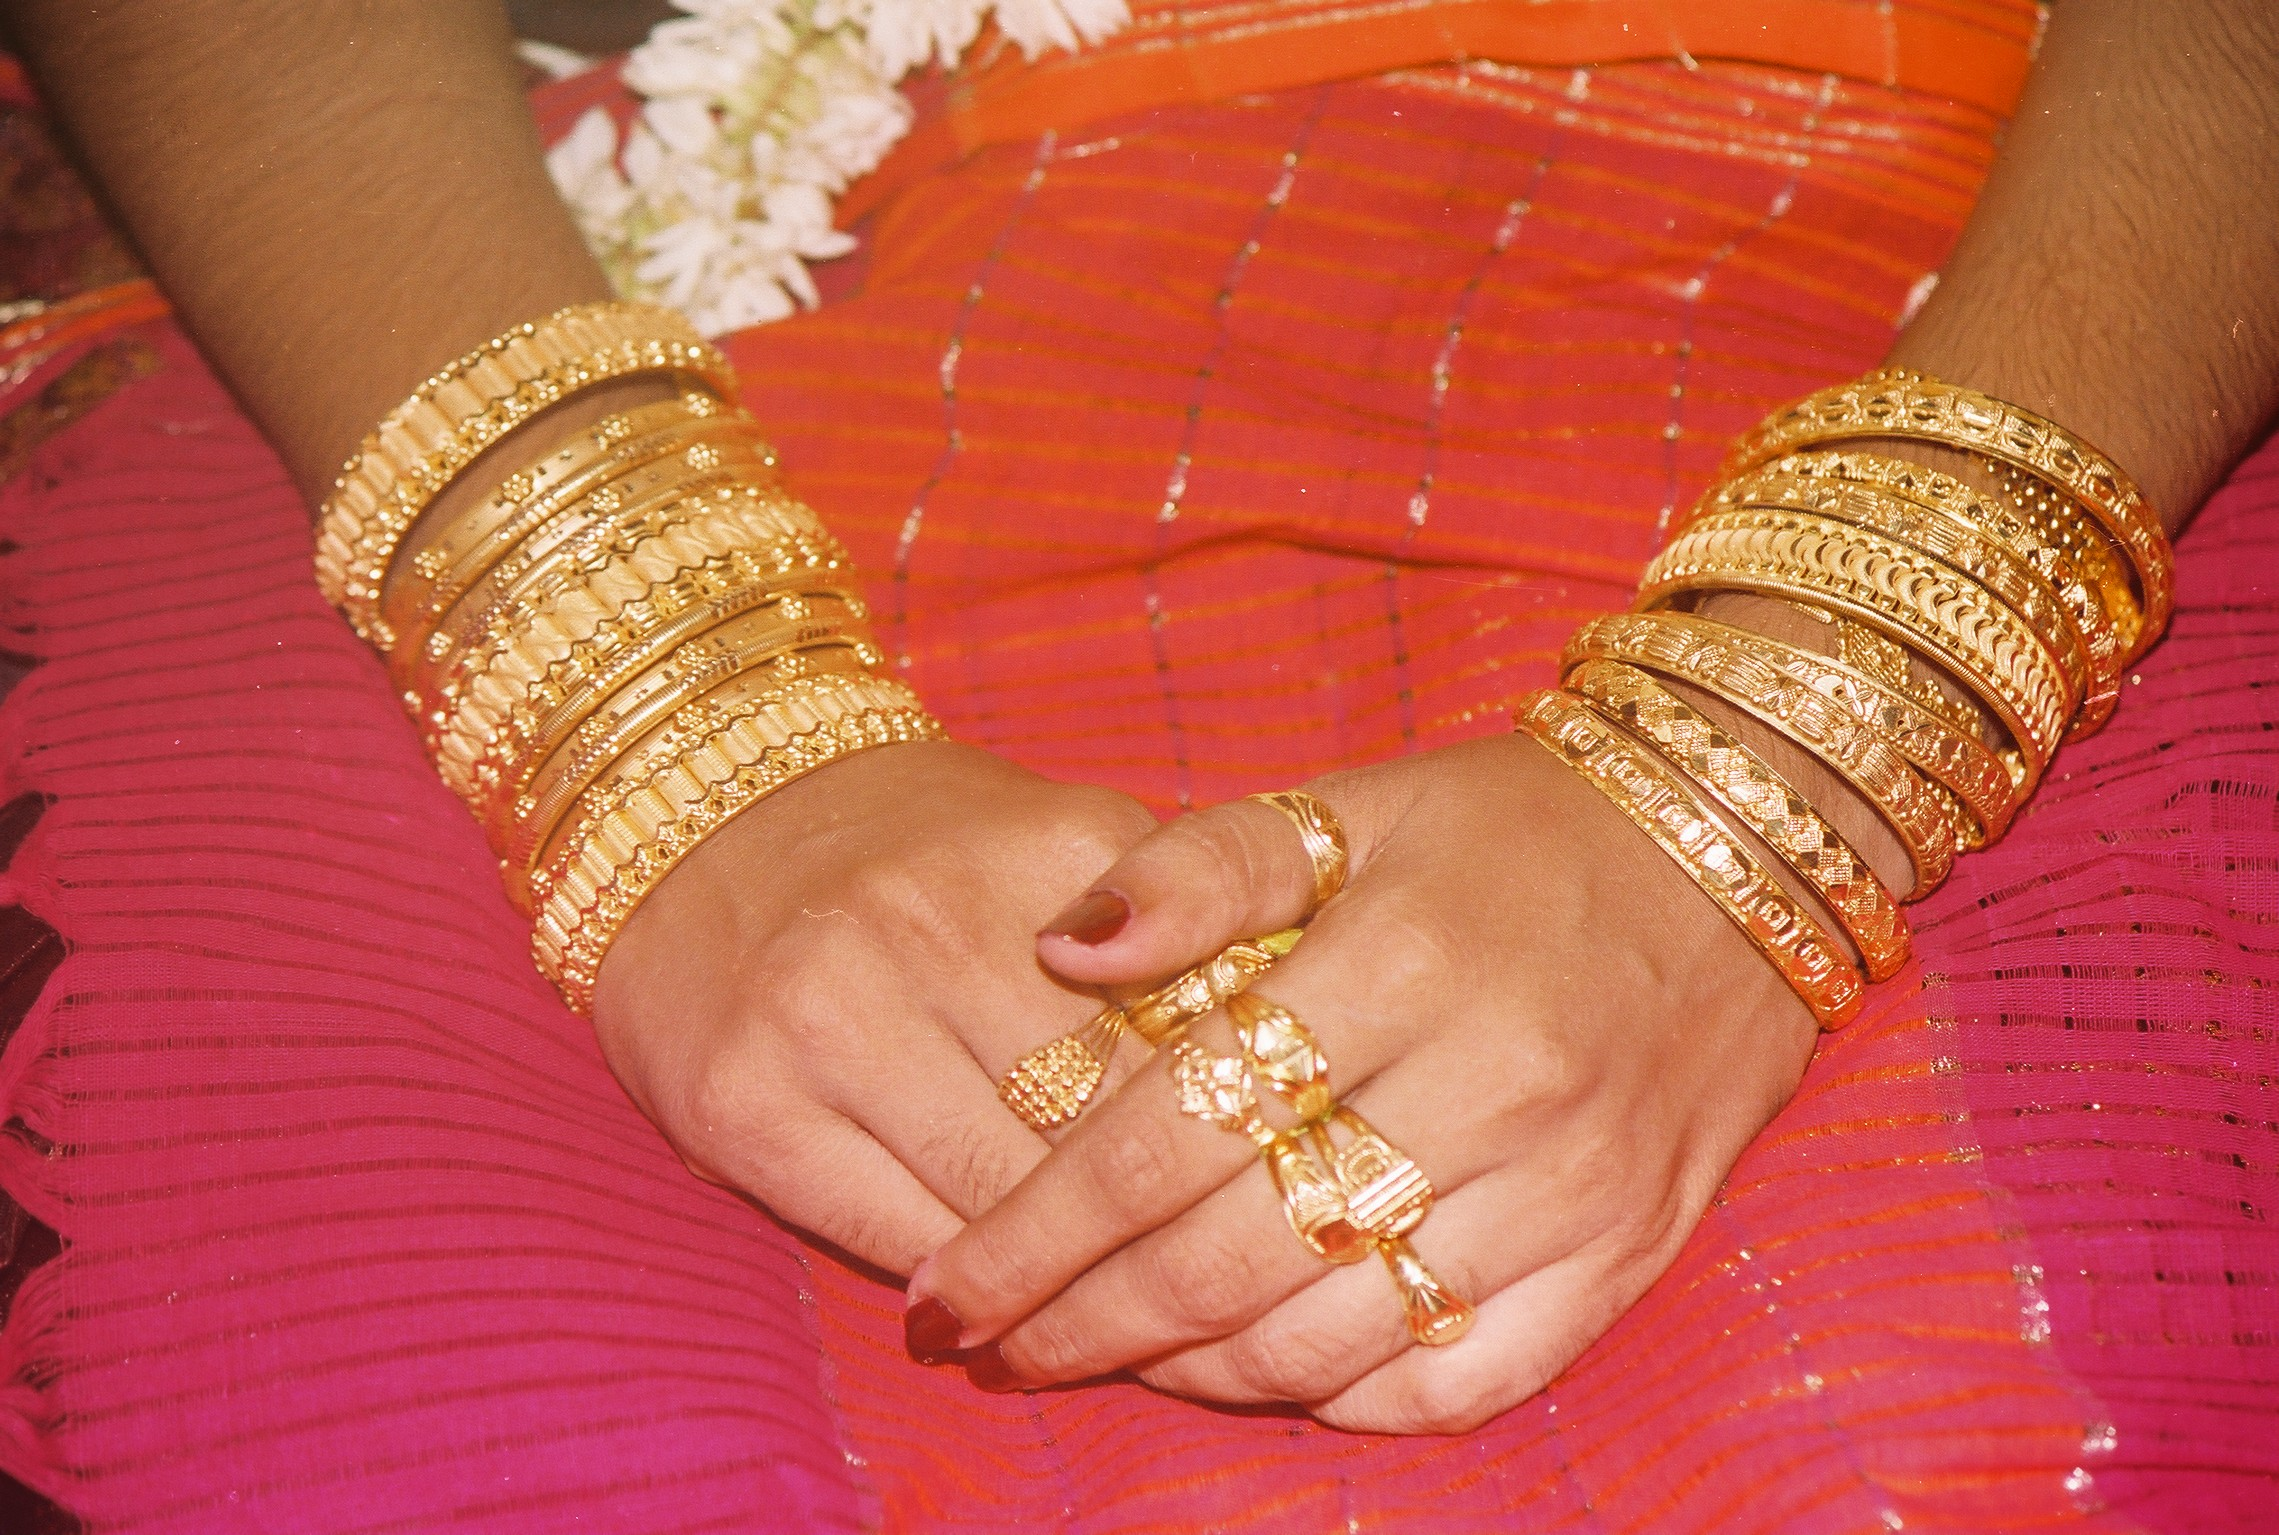 File:Bangles on hands.JPG - Wikimedia Commons